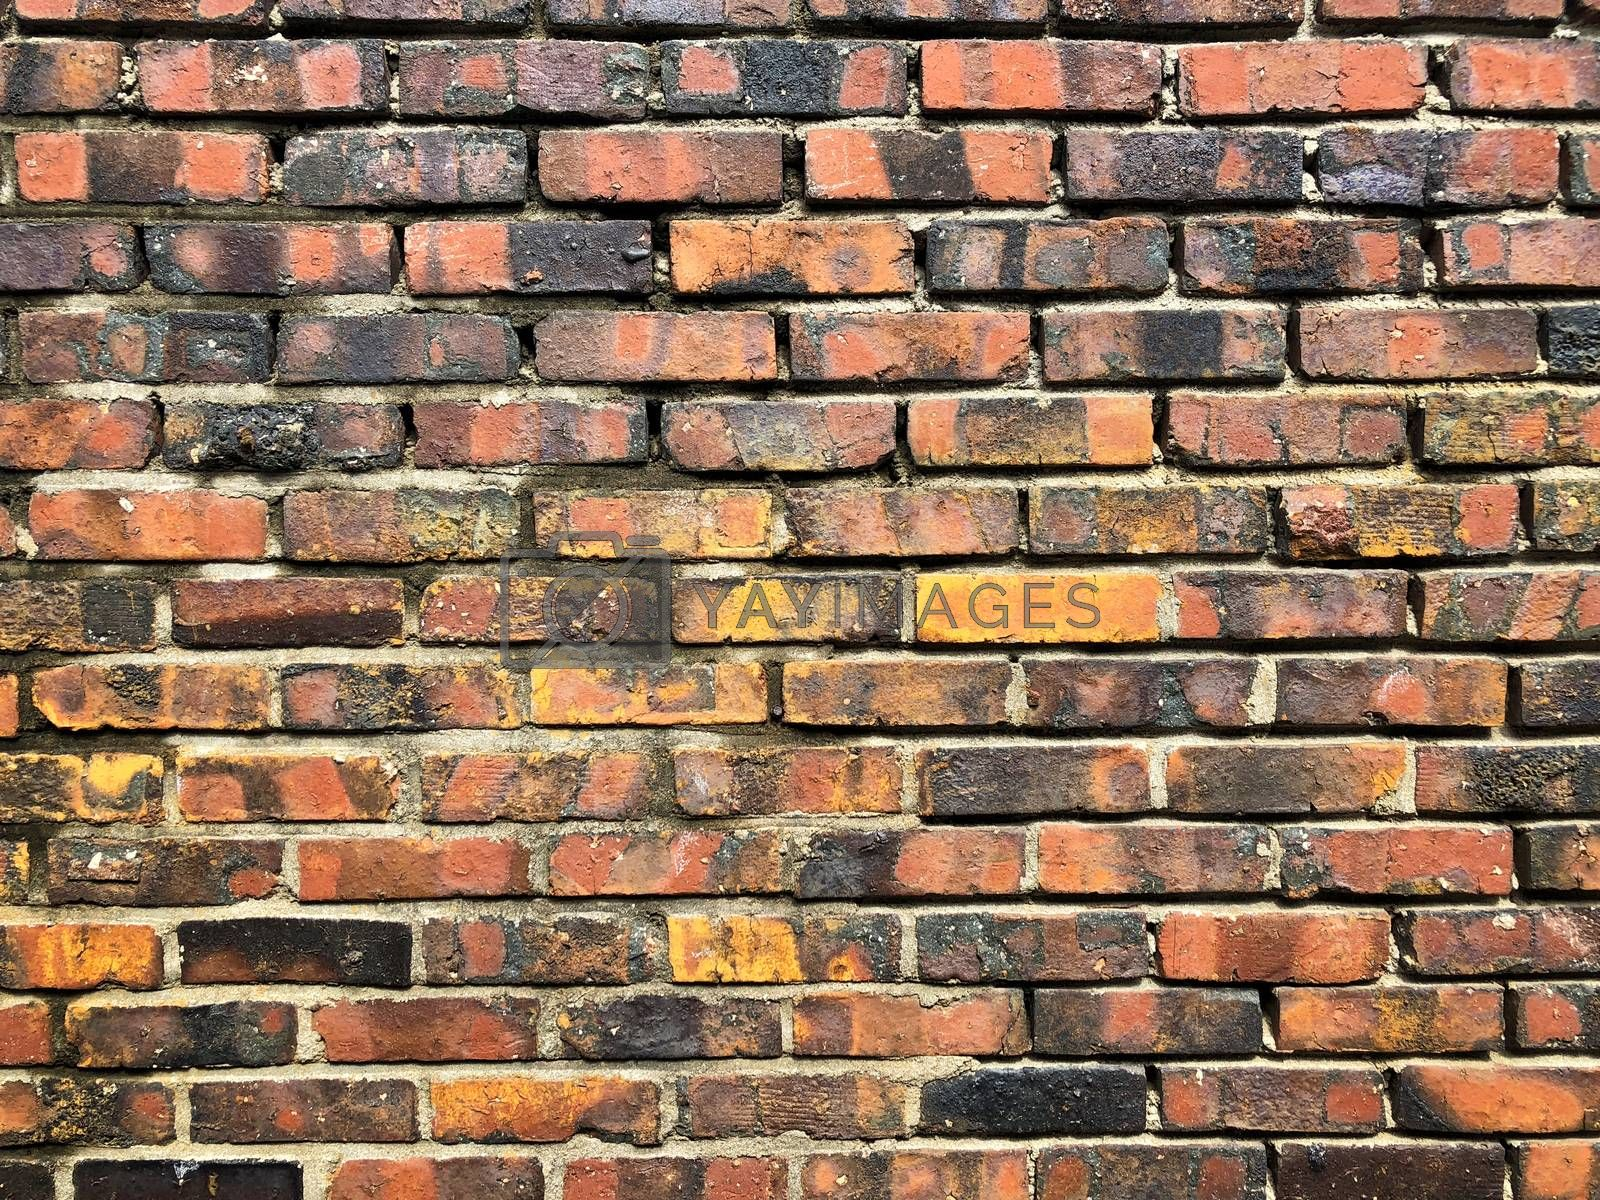 Brick wall background detail and close up